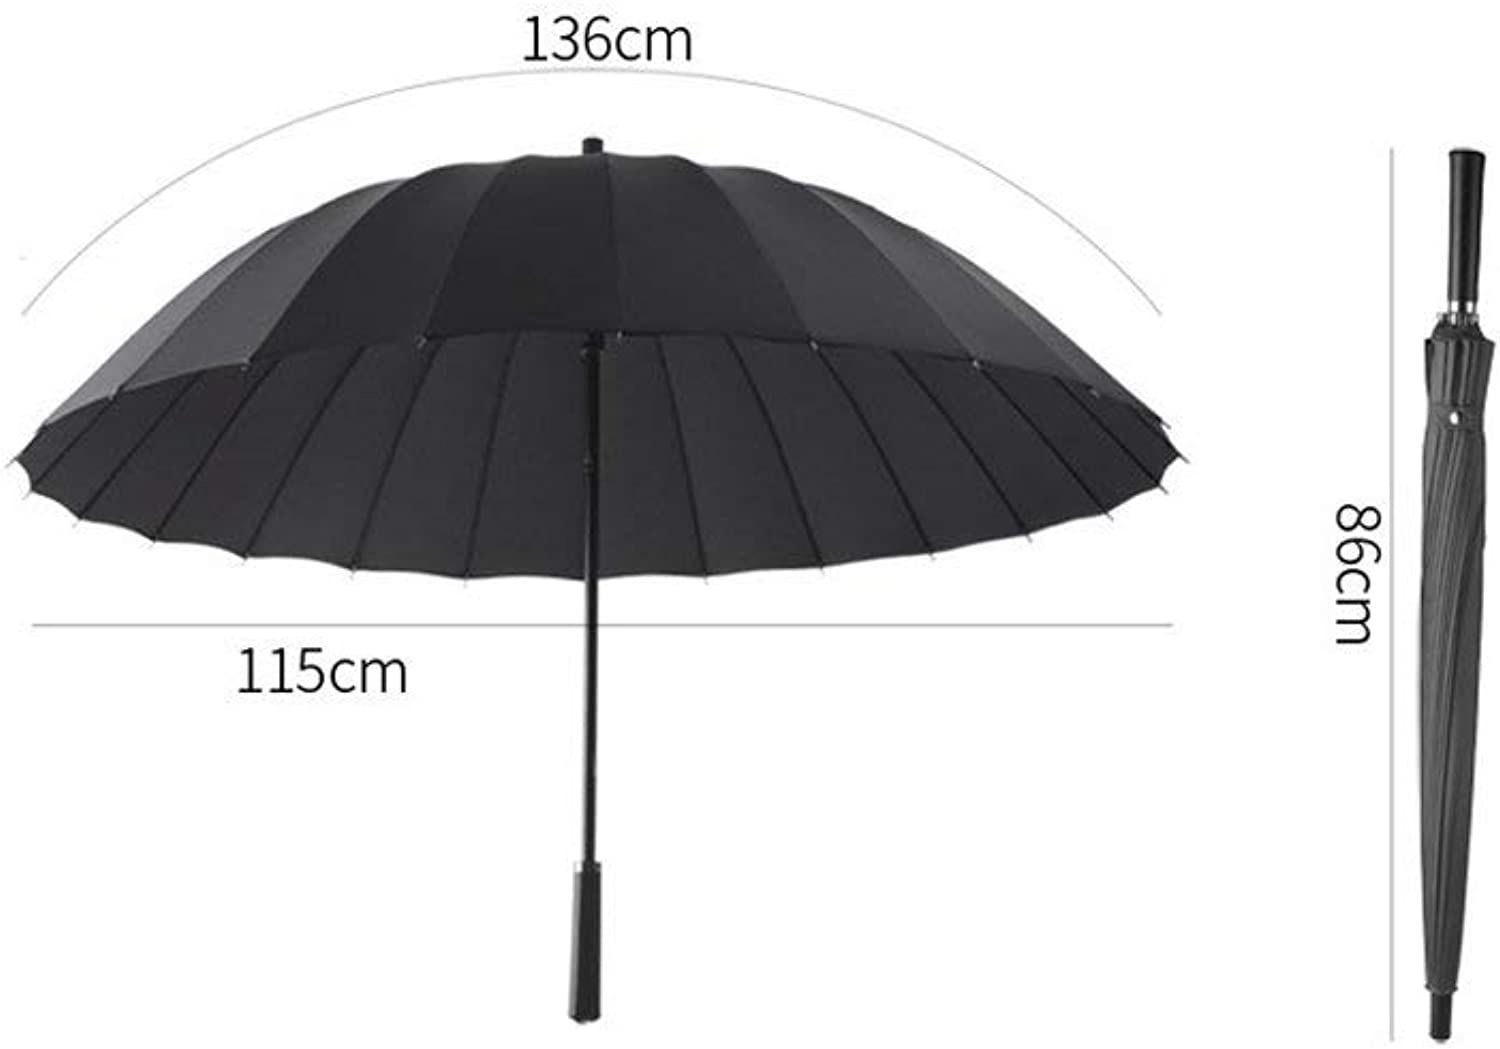 Long Handle Umbrellas, Straight Rod Reinforcement Windproof Rain Commerce Foldable, Non-Slip Handle Windproof Umbrella, ZDS